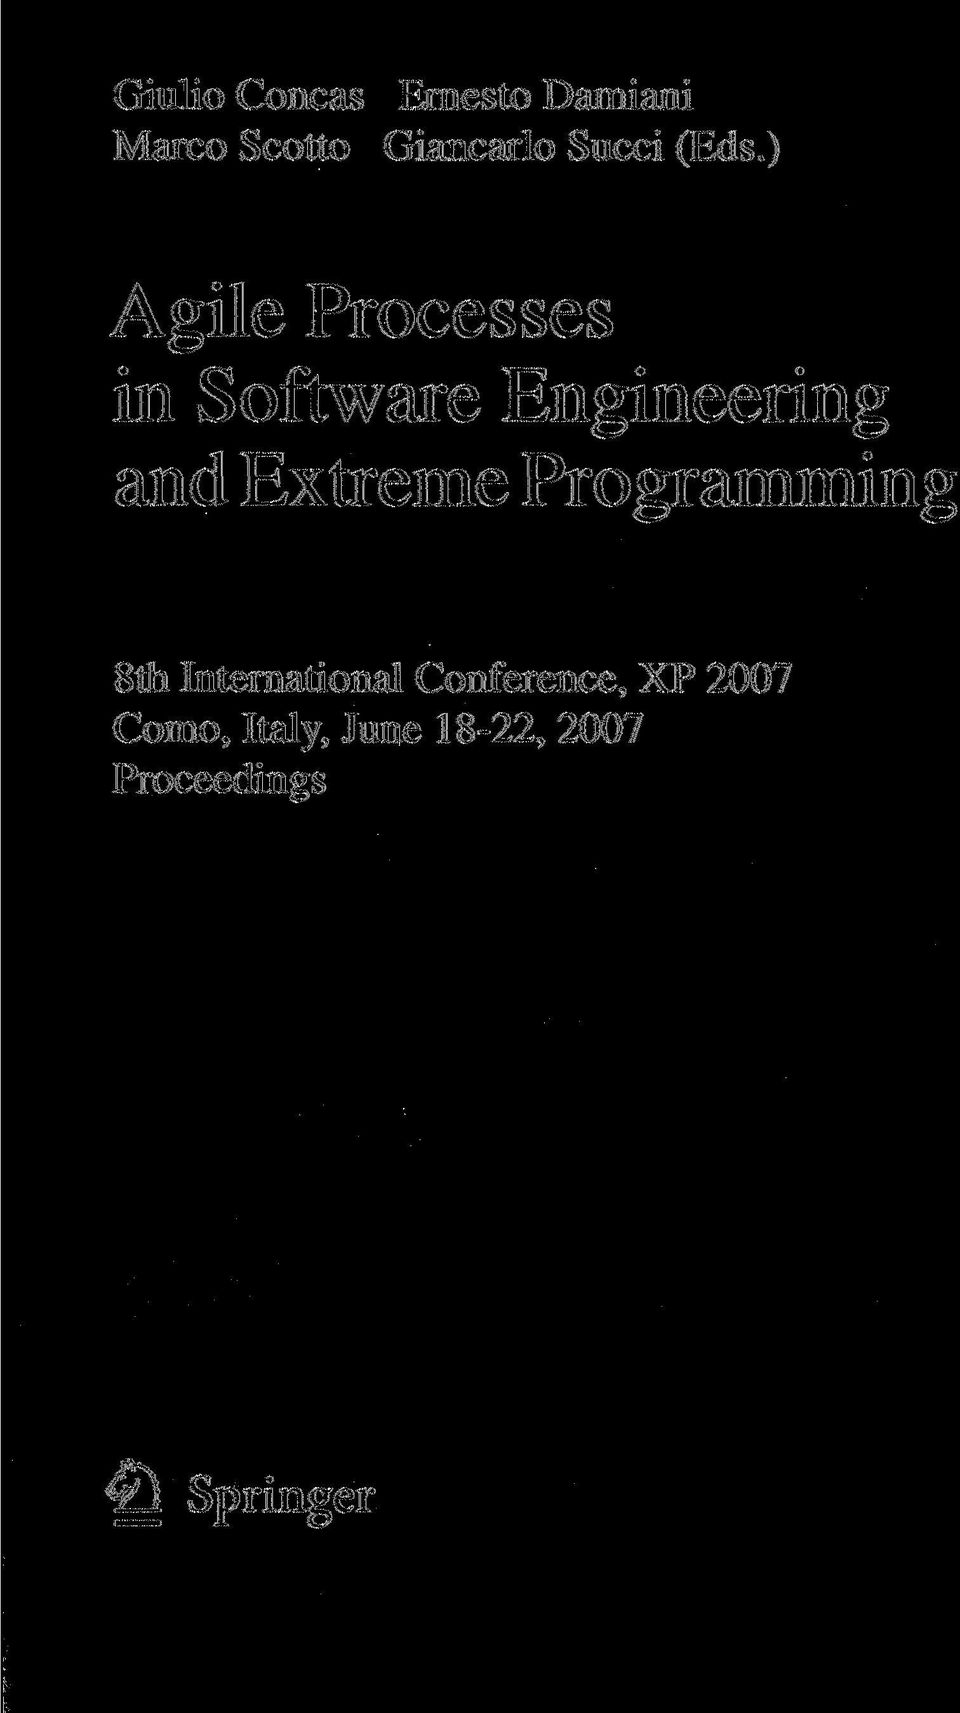 ) Agile Processes in Software Engineering and Extreme